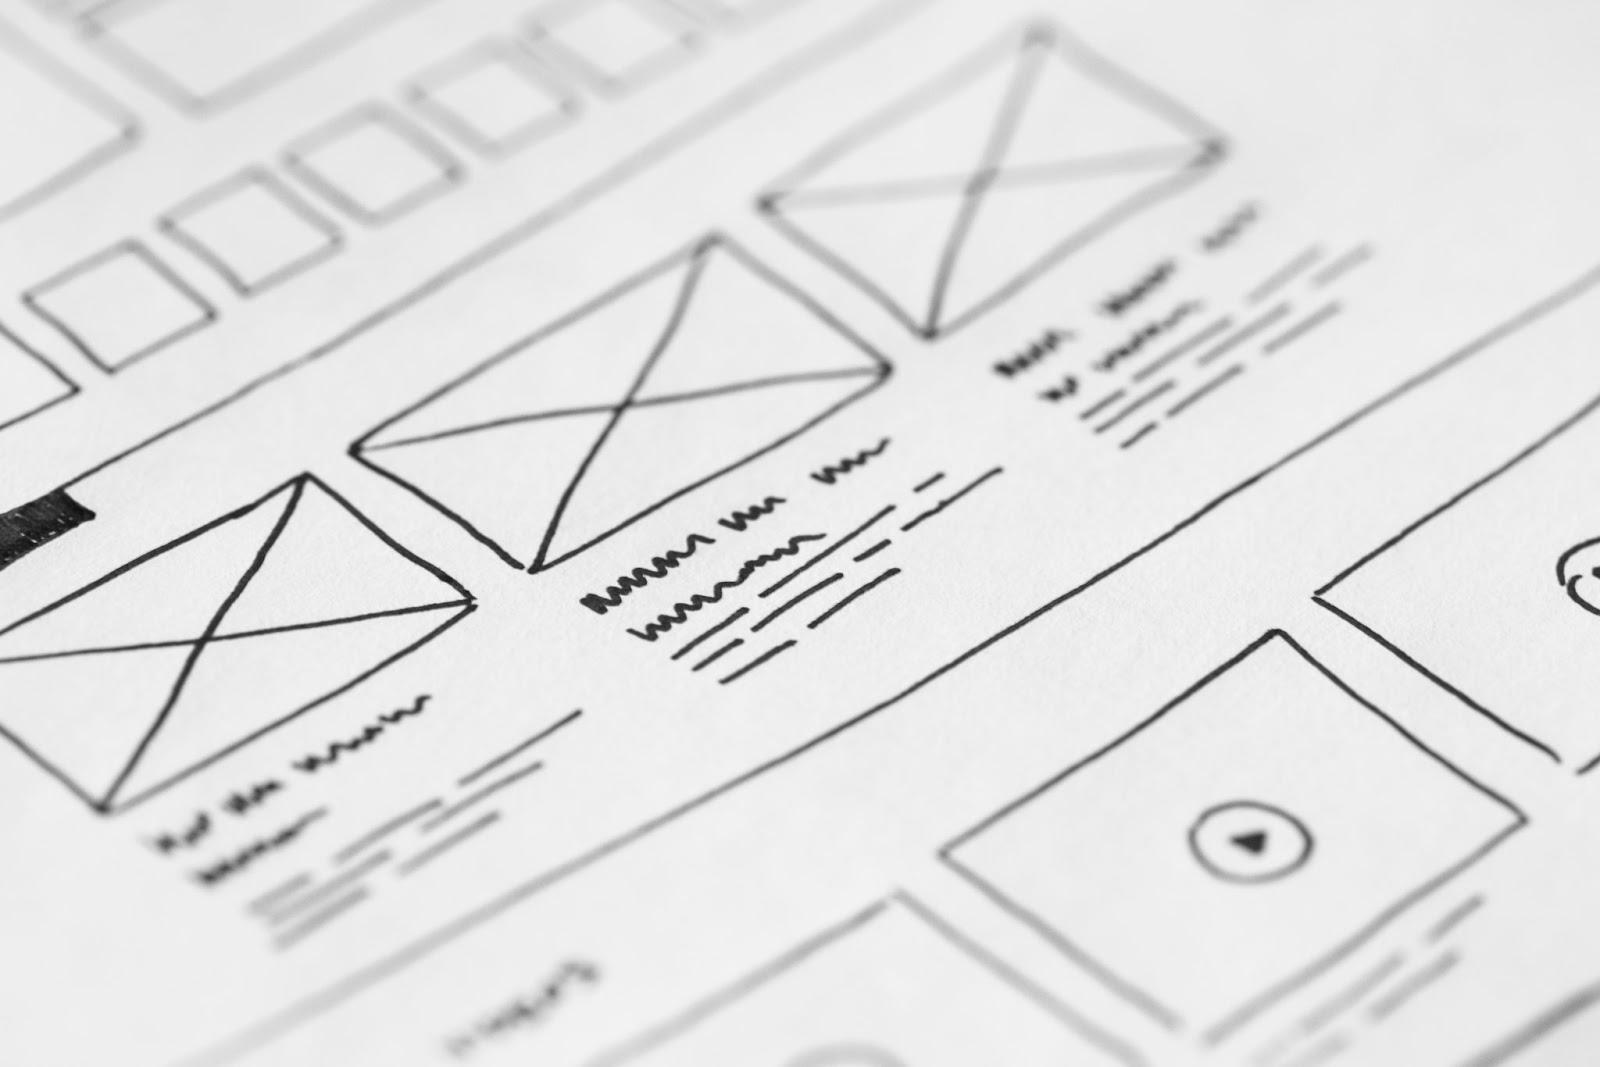 Example of a wireframe sketch